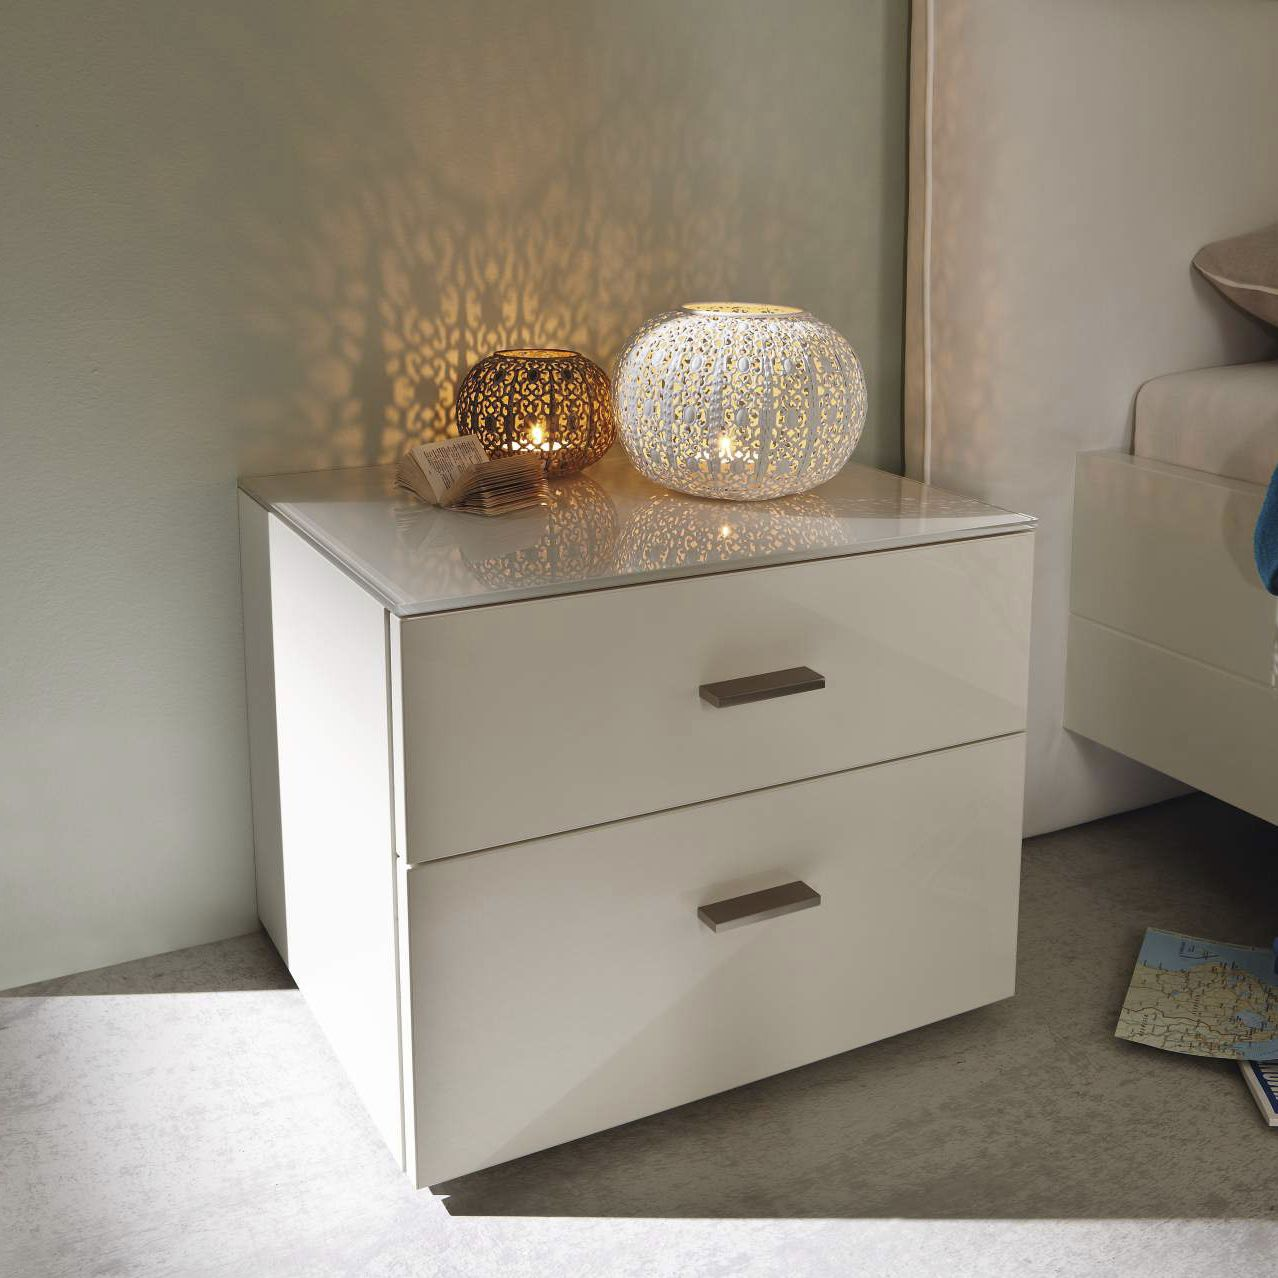 Contemporary Bedside Table Glossy Lacquered Wood Rectangular With Drawer Now No 14 3312 Now By Hulsta